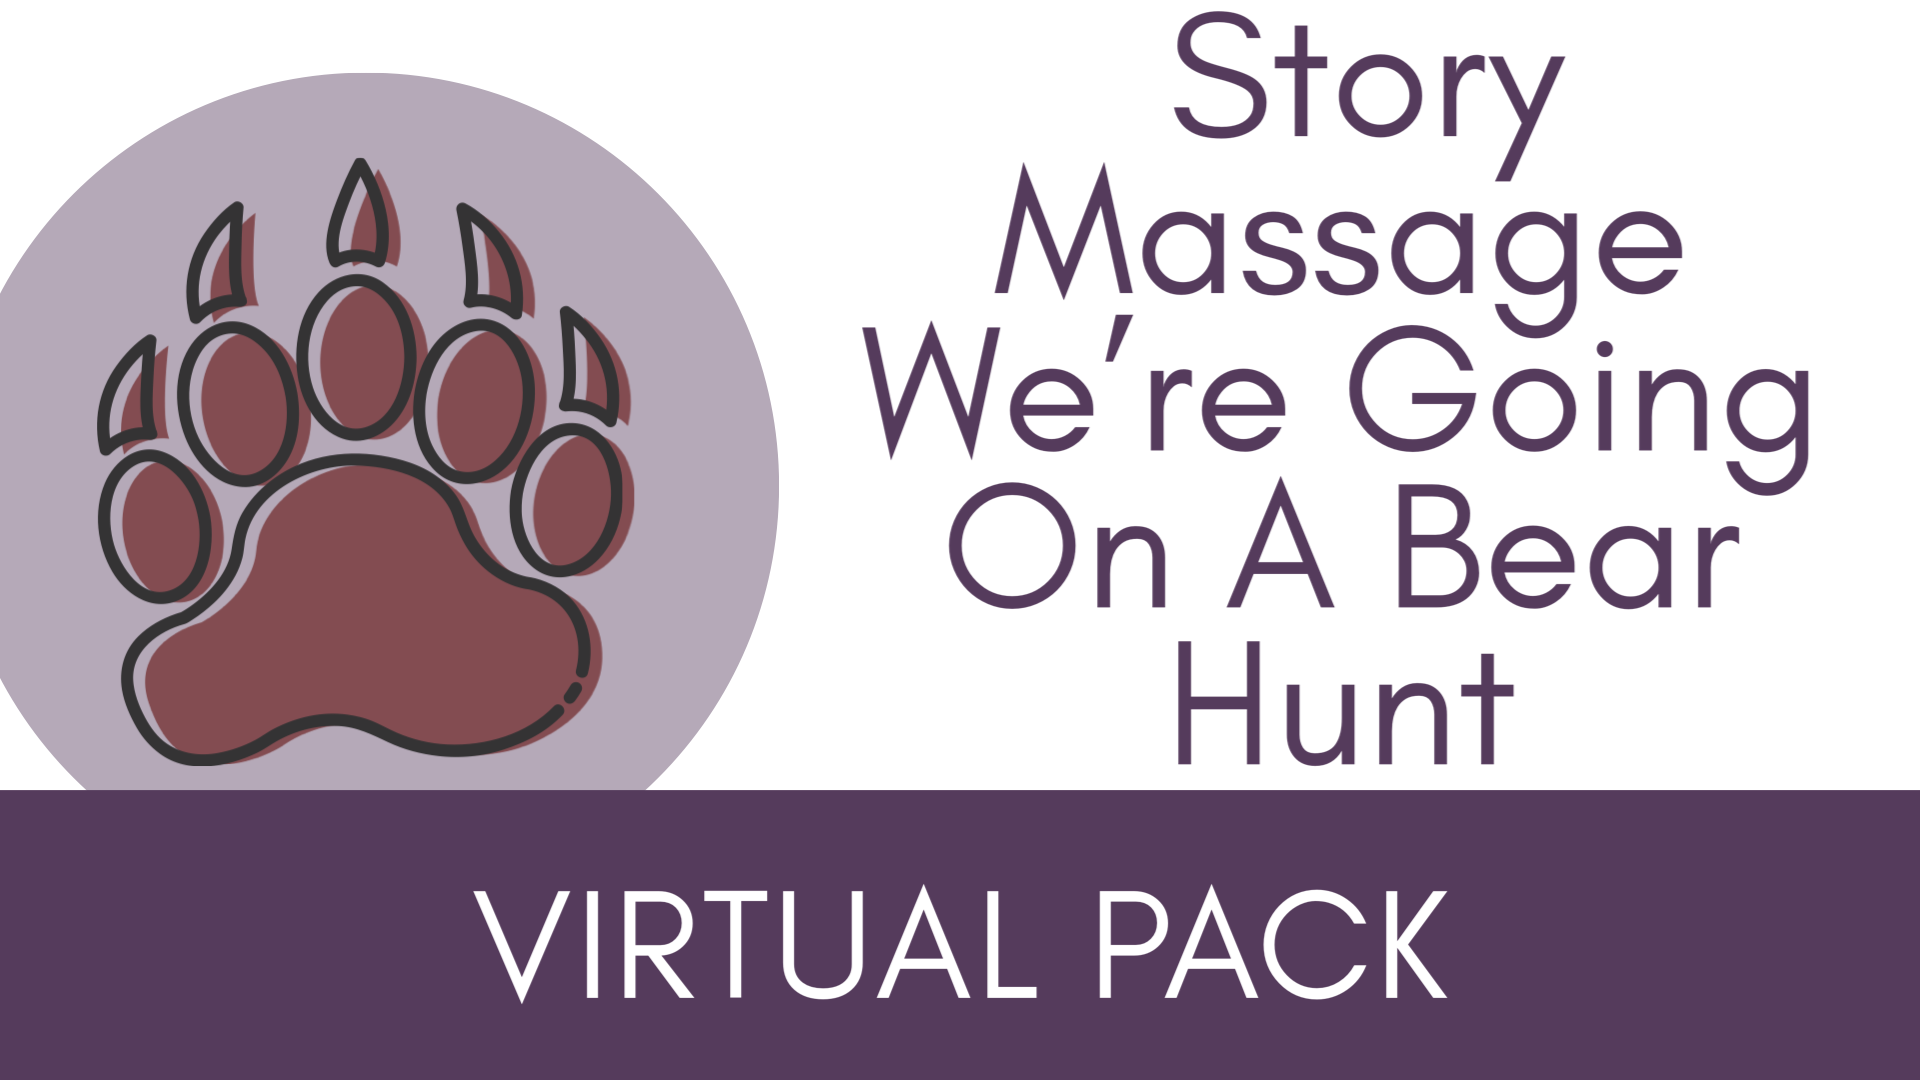 Story Massage We're Going On A Bear Hunt Virtual Packs